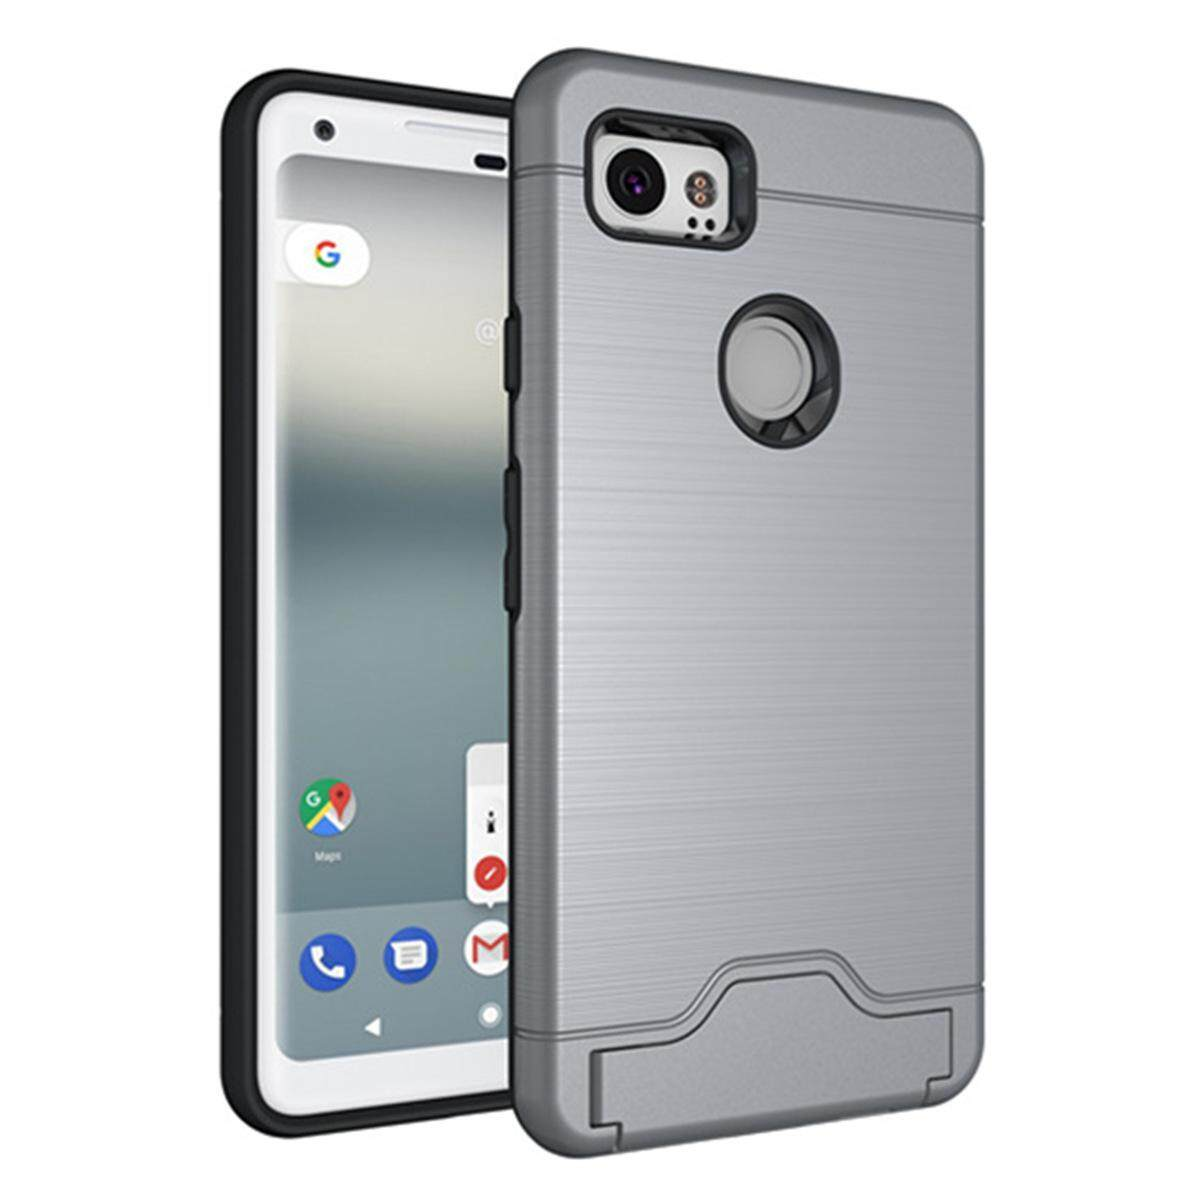 Hình ảnh for Google Pixel 2 XL Case [Hidden Card Slot] Hard PC + TPU Hybrid Back Armor Case Cover, with Cryptic Card Storage Slot, Skidproof, Minimalist - intl